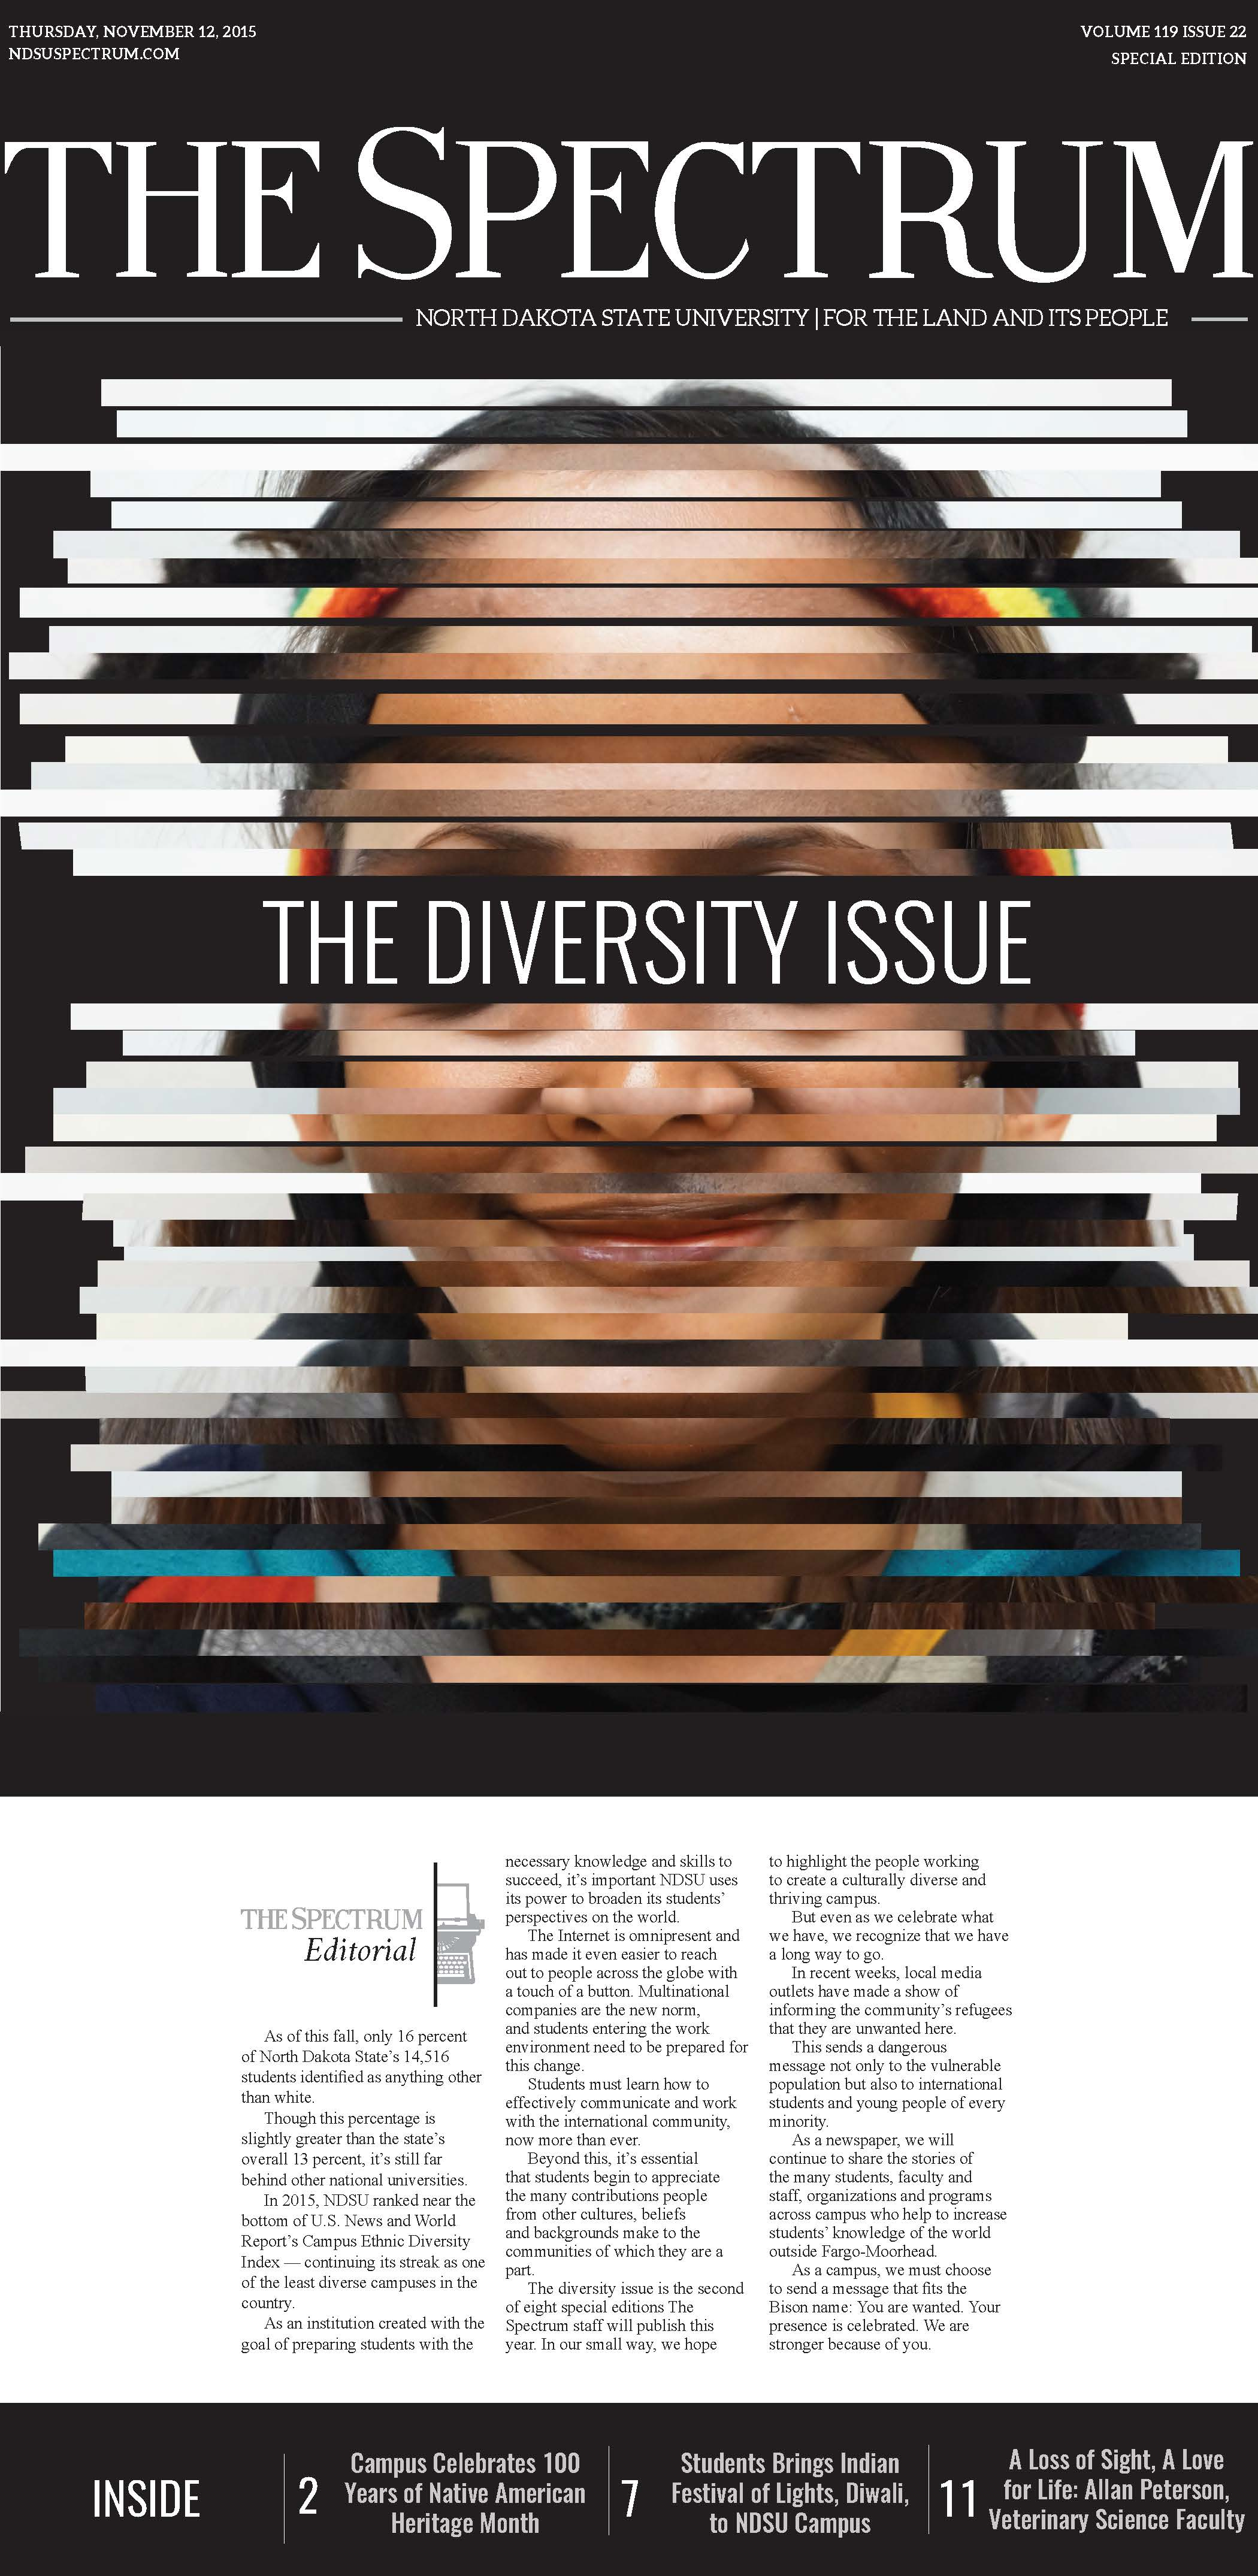 - Front page of our monthly special edition. This issue focused on diversity at our Fargo, North Dakota campus.